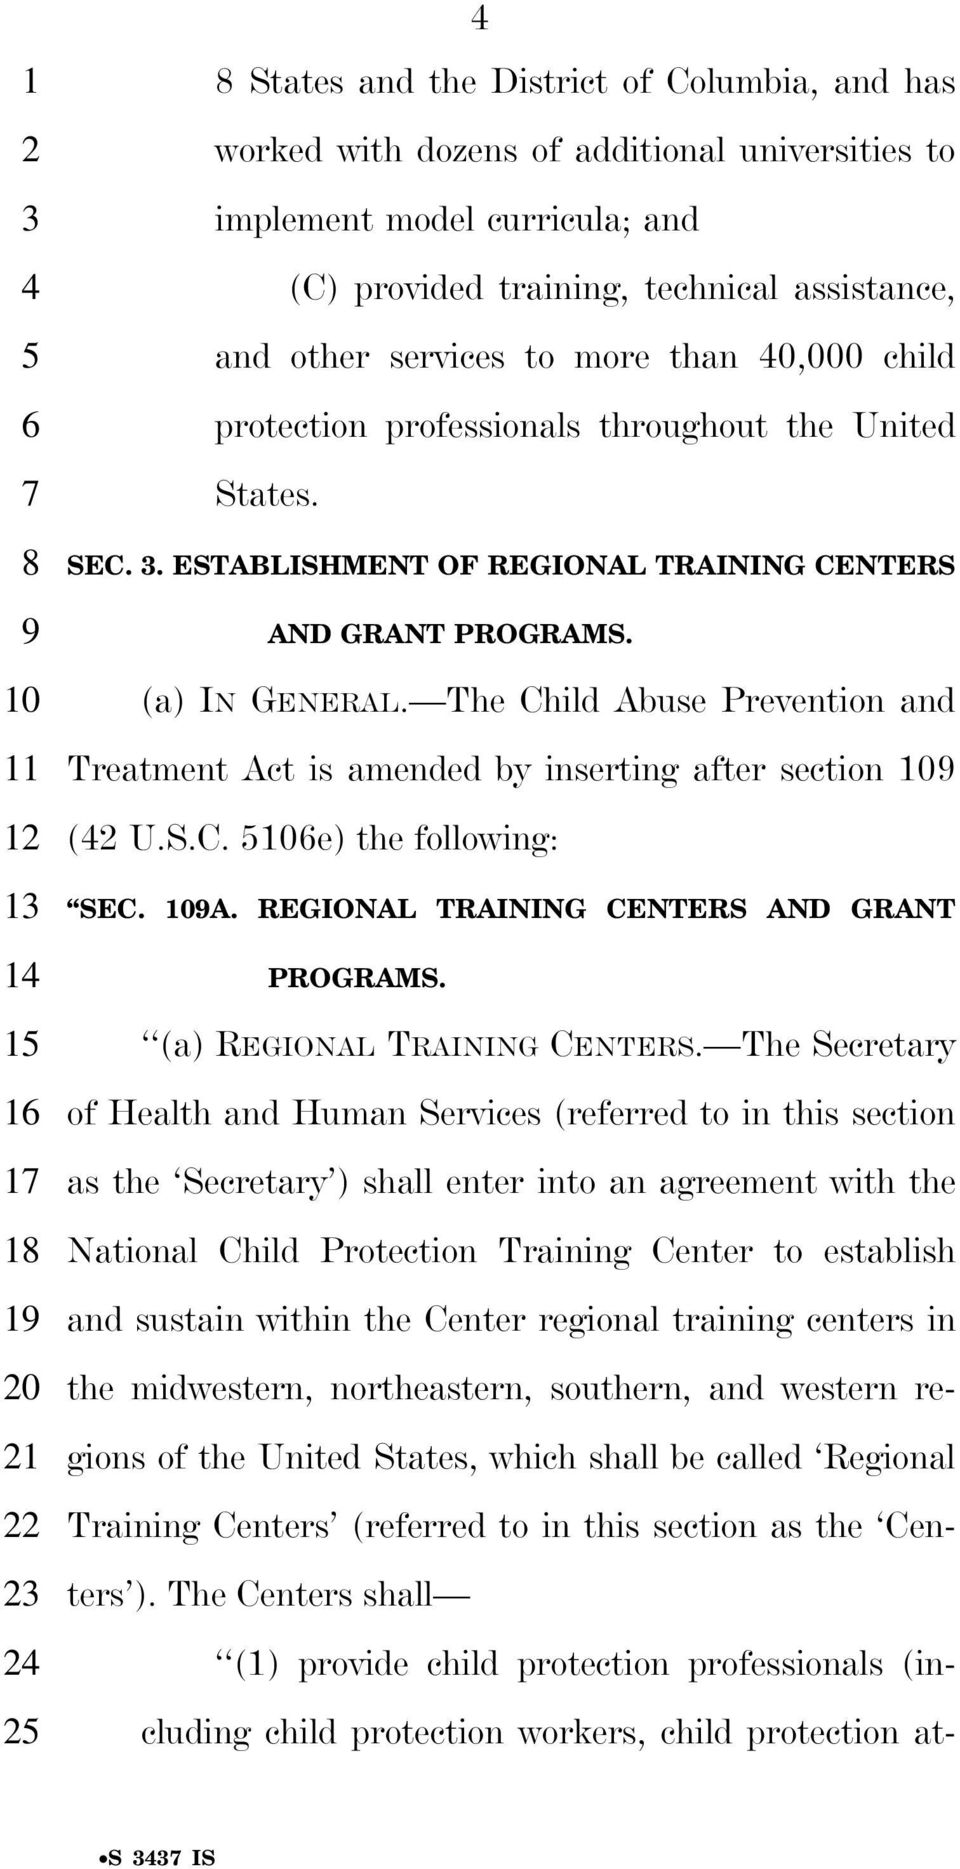 (a) IN GENERAL. The Child Abuse Prevention and Treatment Act is amended by inserting after section 109 (2 U.S.C. 5106e) the following: SEC. 109A. REGIONAL TRAINING CENTERS AND GRANT PROGRAMS.